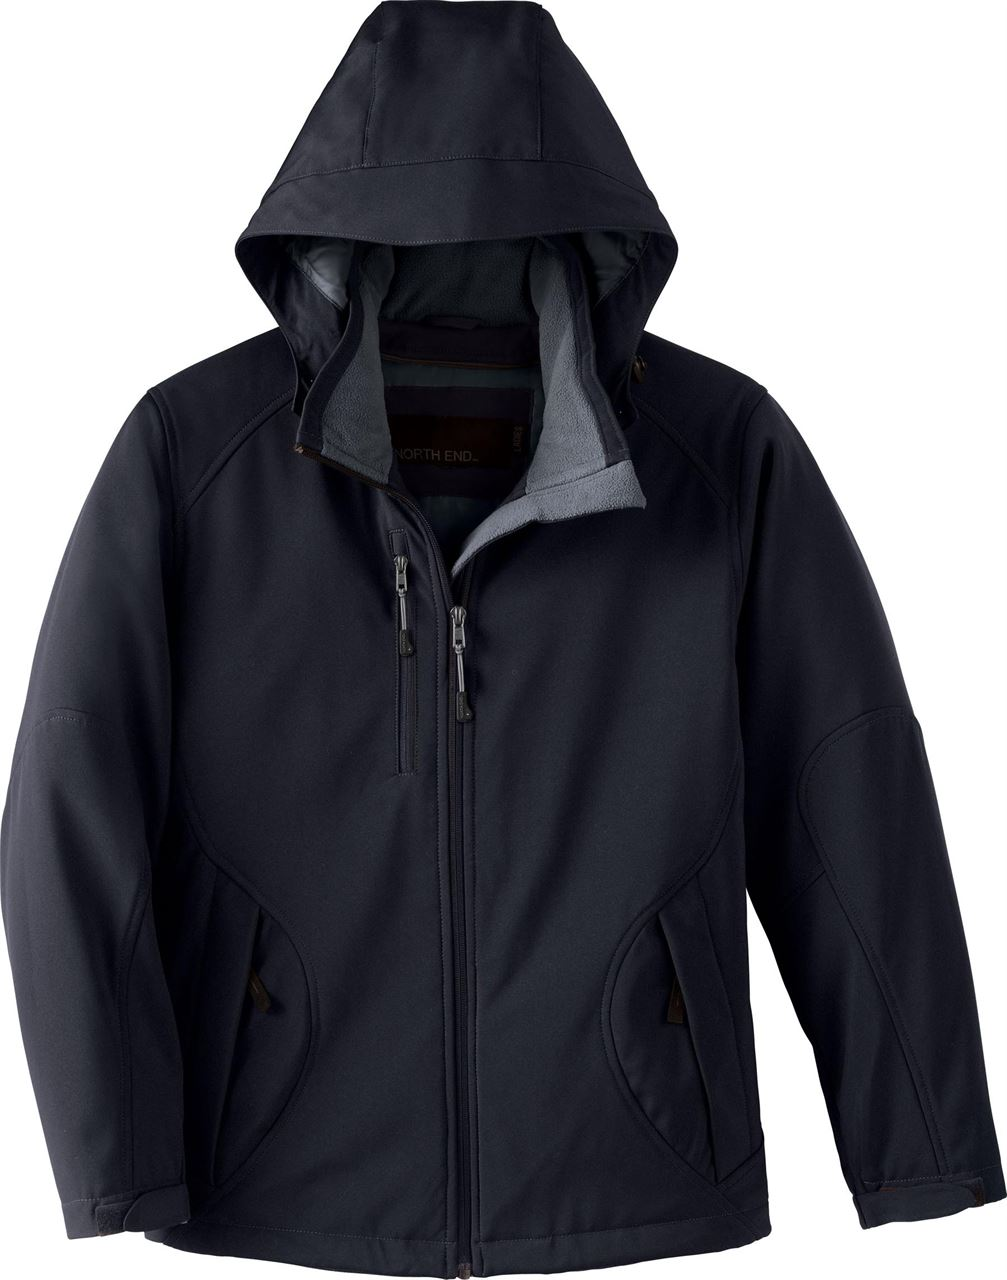 Picture of North End Glacier Ladies Insulated Soft Shell W/ Detach Hood